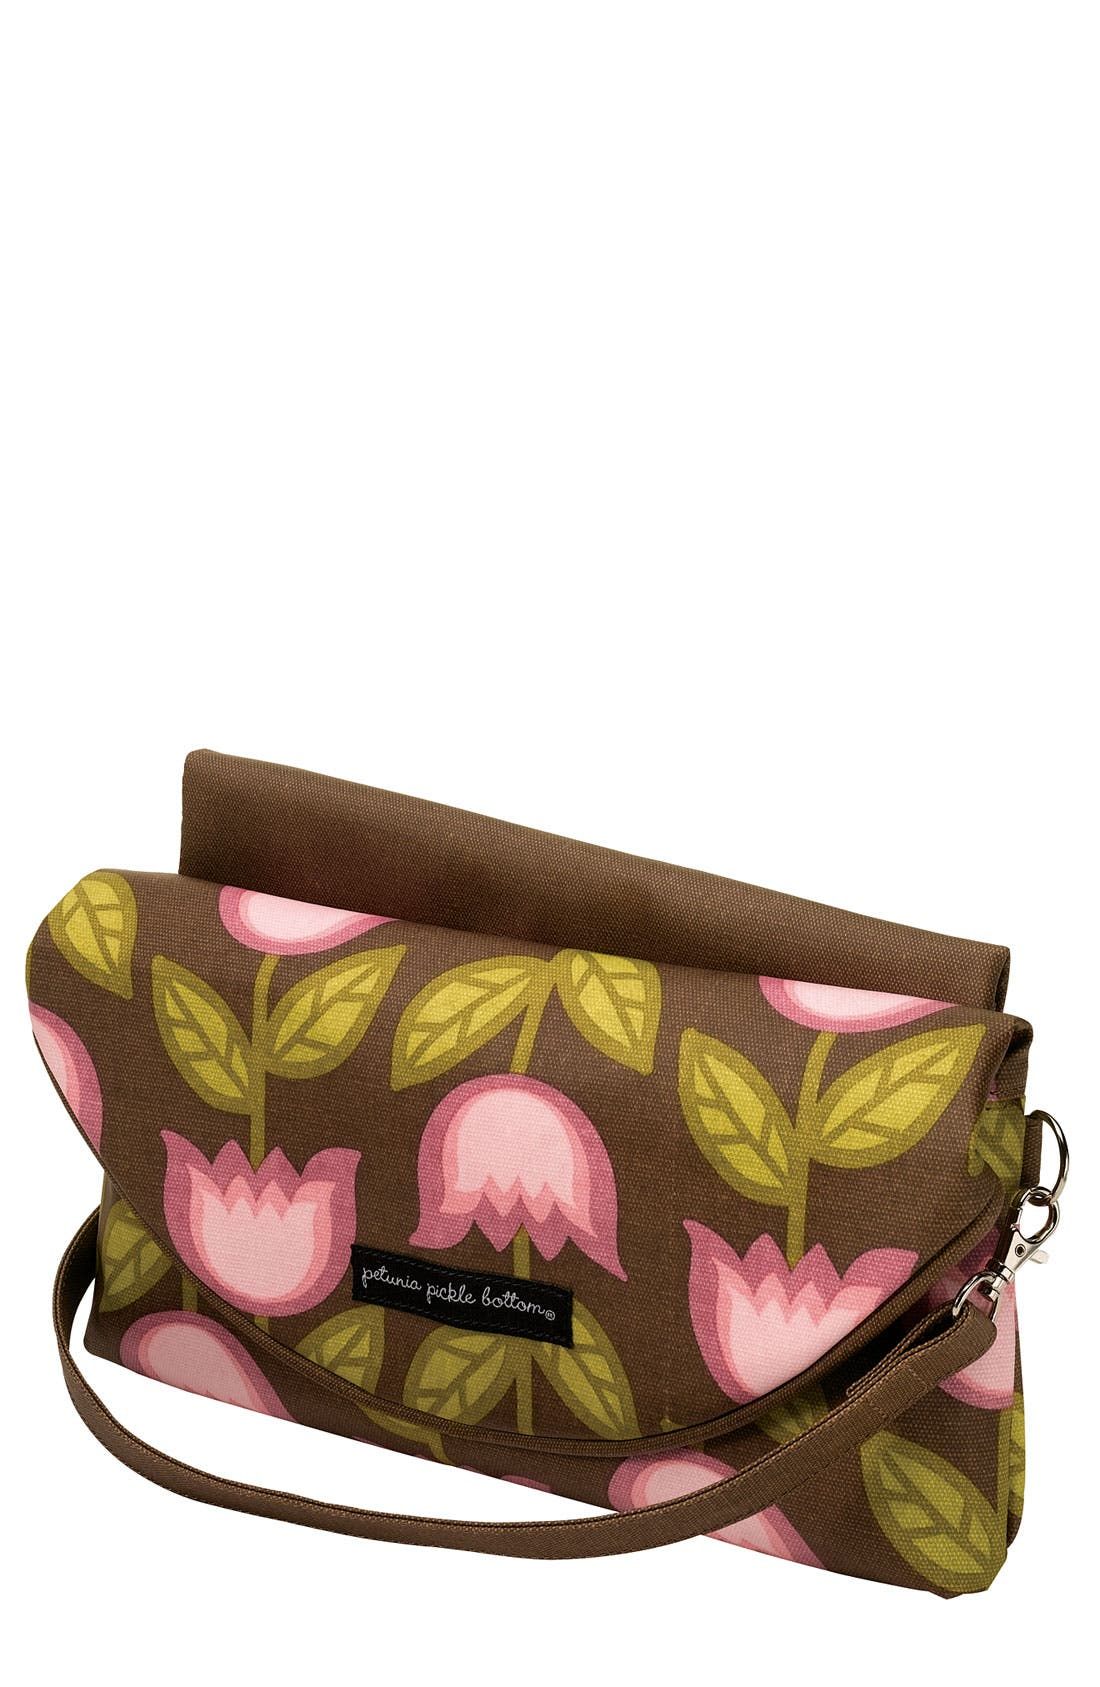 Alternate Image 1 Selected - Petunia Pickle Bottom Glazed 'Change It Up' Clutch